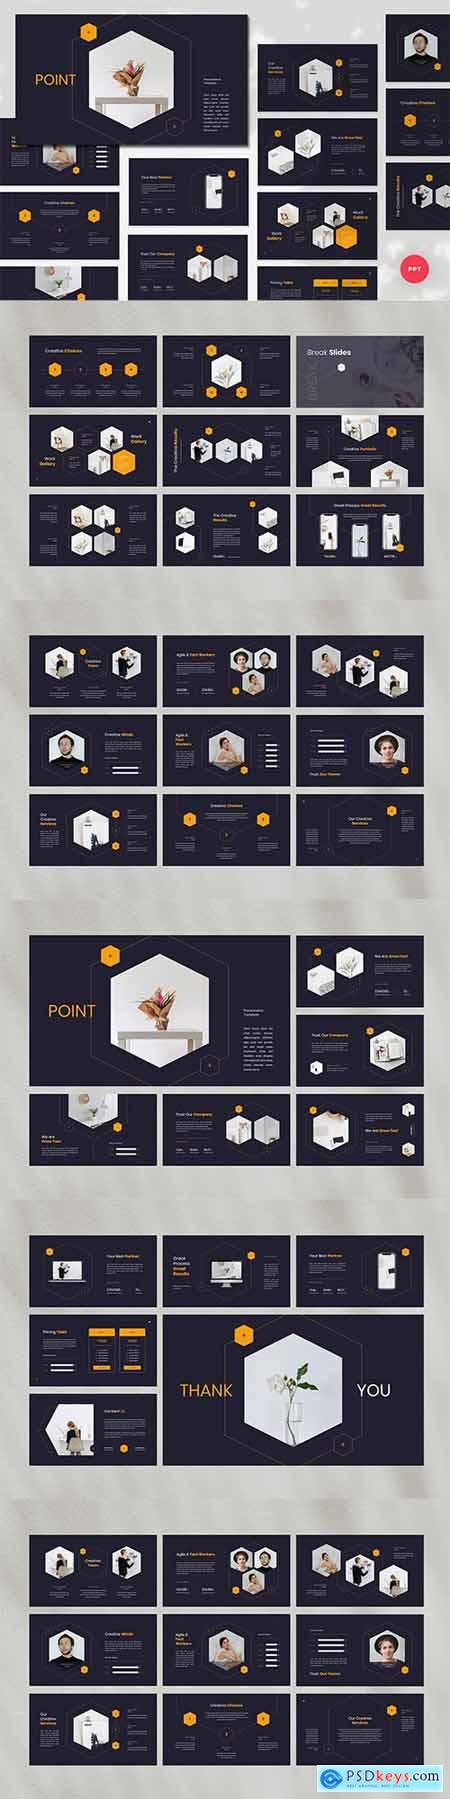 Point - Creative PowerPoint, Keynote, Google Slides Templates